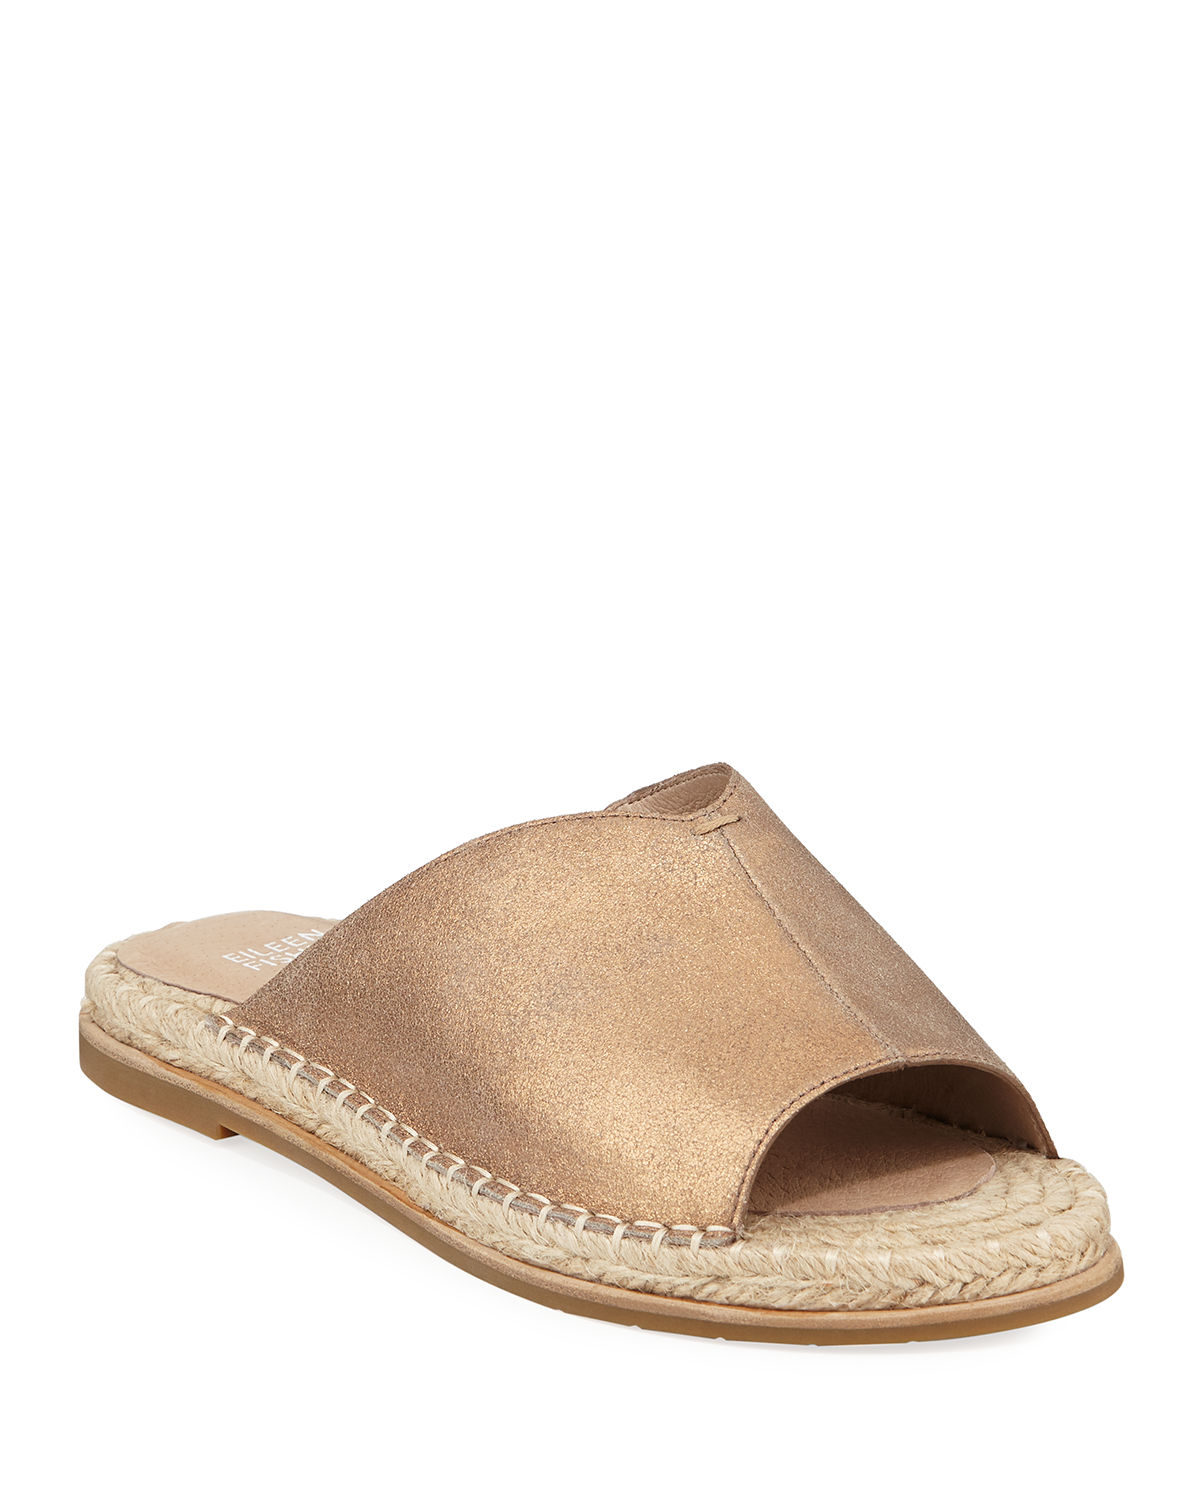 Milly Metallic Leather Espadrille Sandals